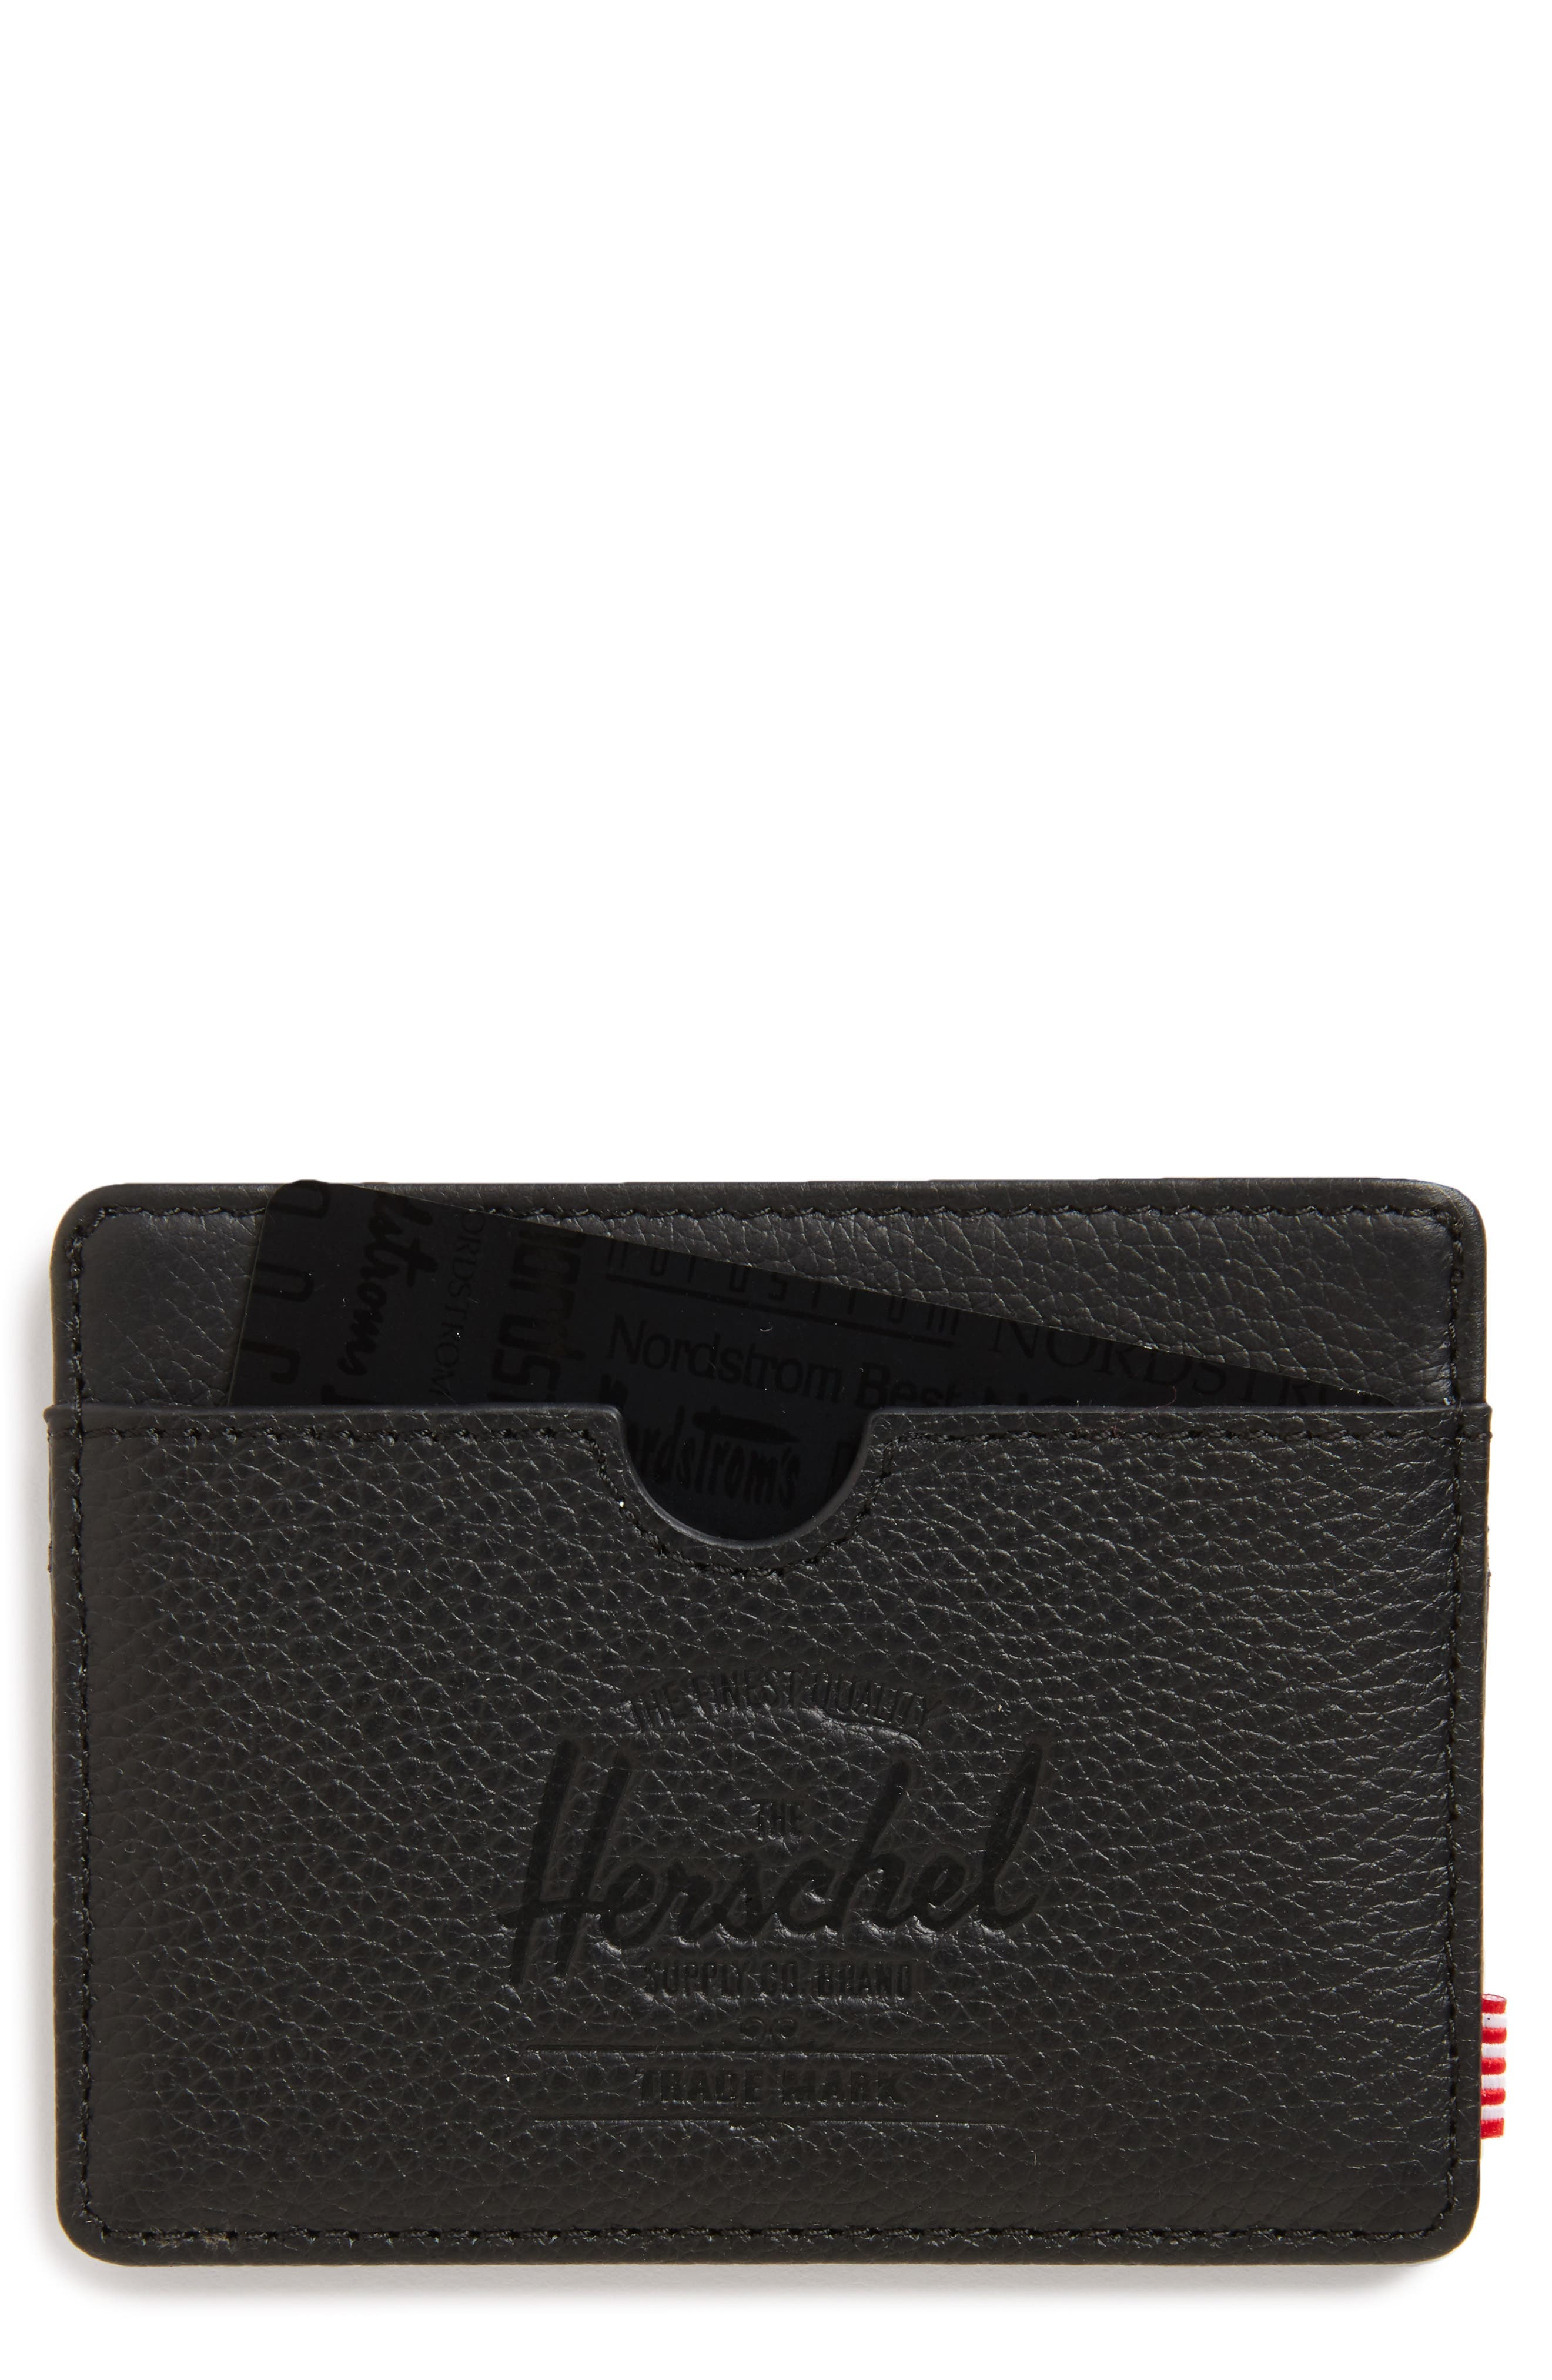 Charlie Leather Card Case,                         Main,                         color,